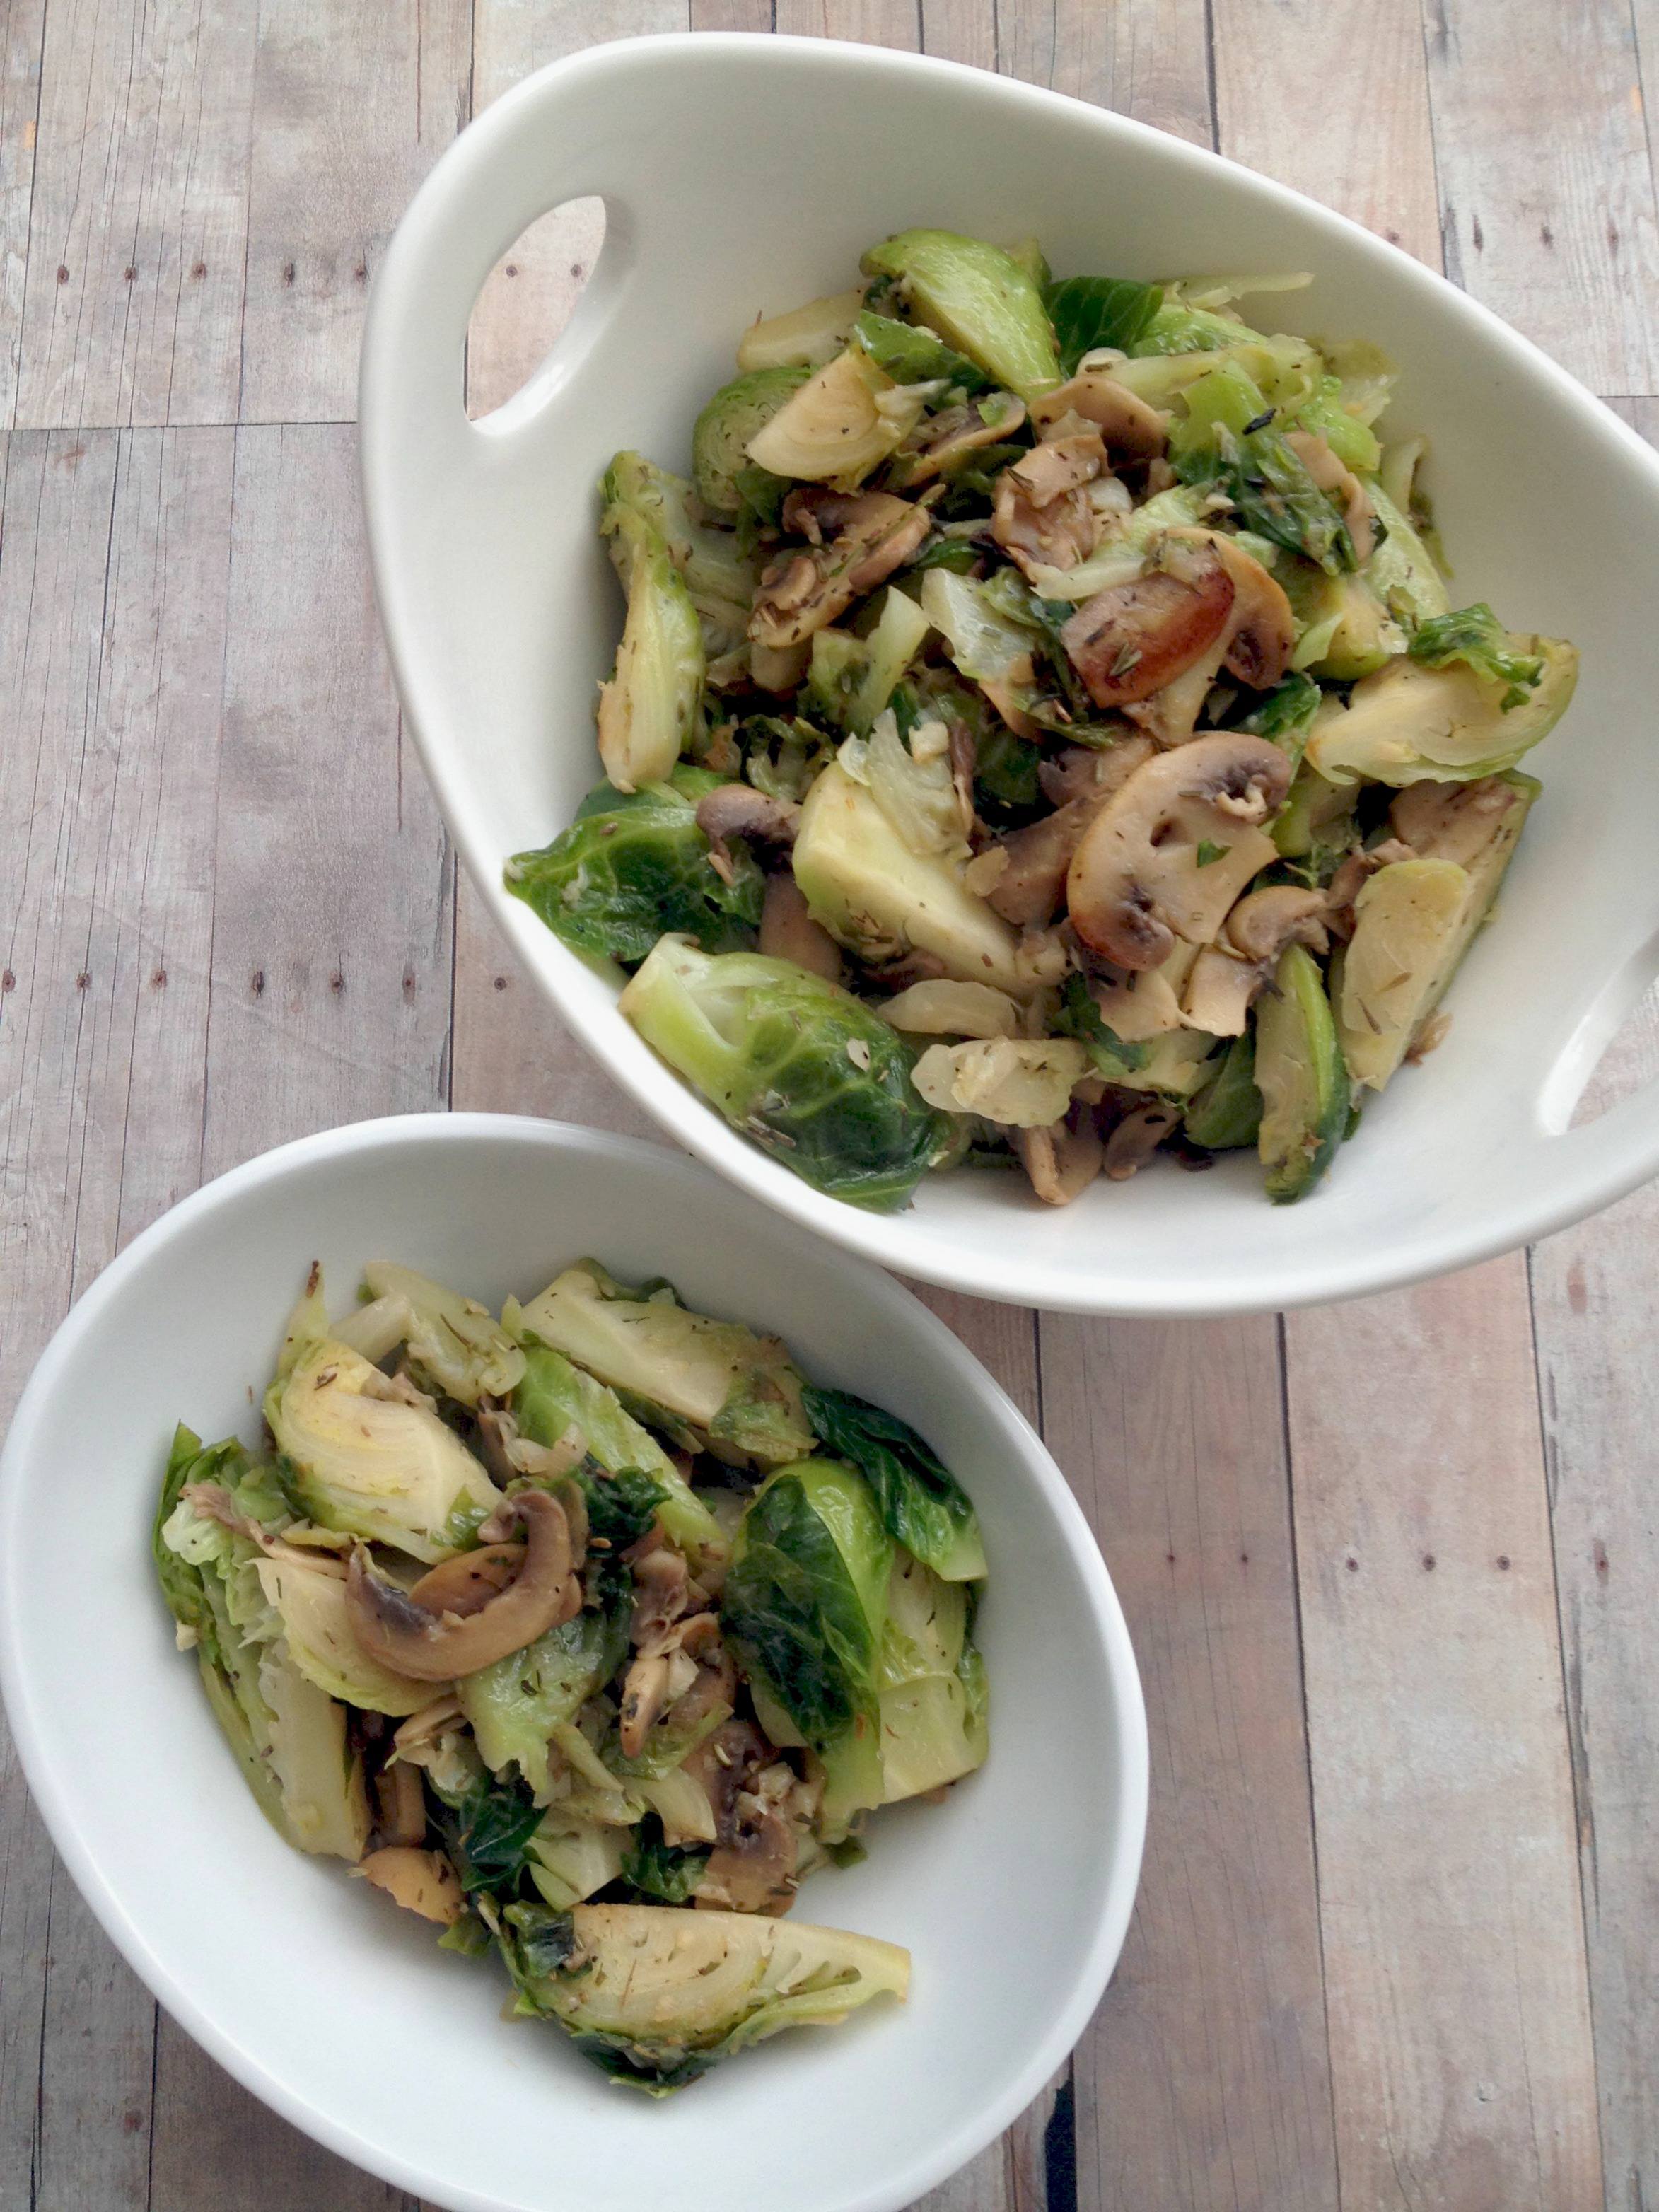 Easy Sauteed Brussels Sprouts | Fitting Into Vegan